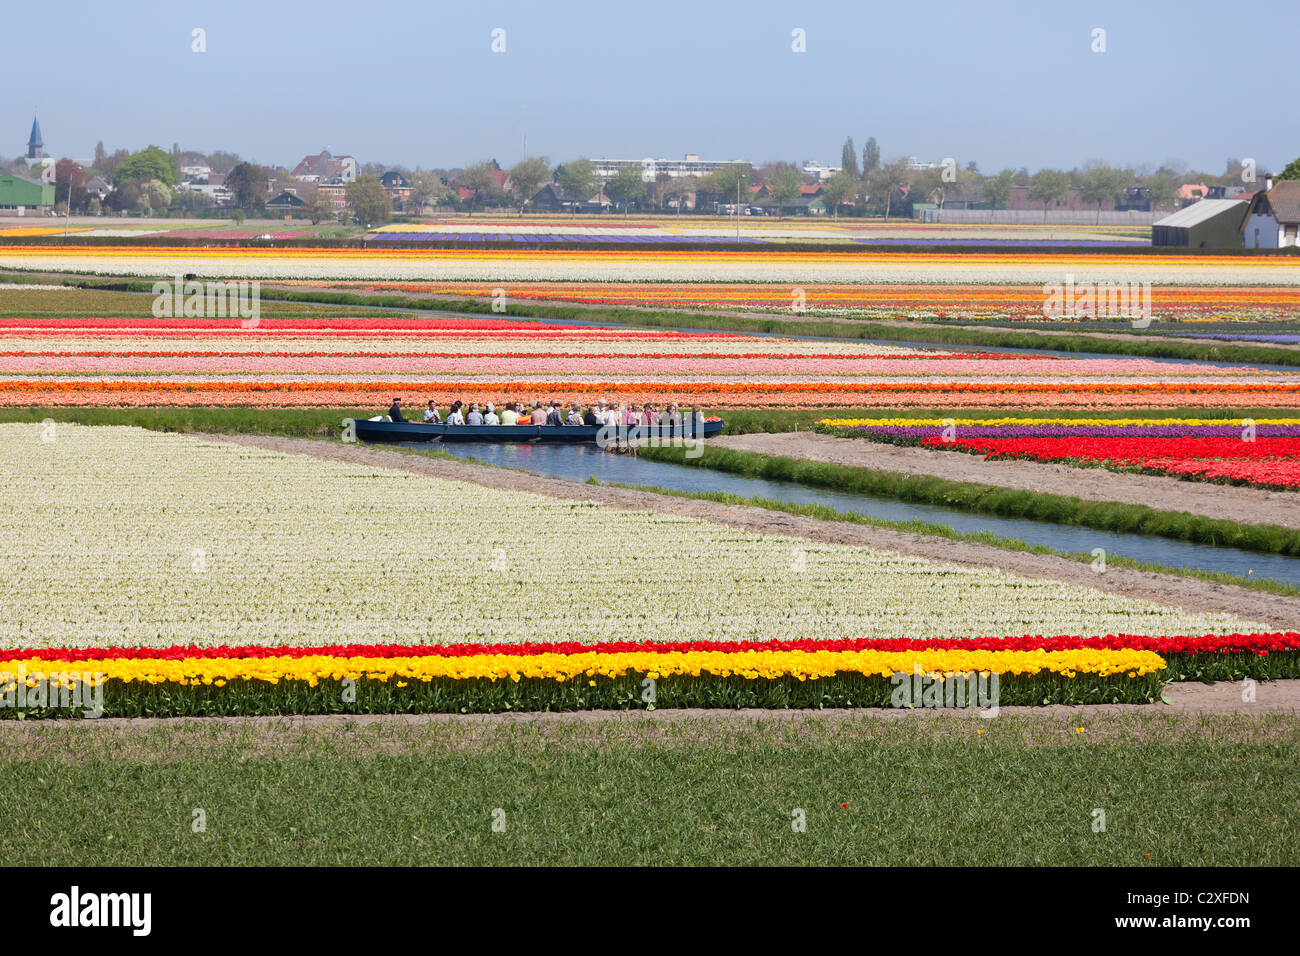 Visitors take a trip through the flowering tulip fields by electric powered boat at Keukenhof Flower Garden in Lisse, - Stock Image